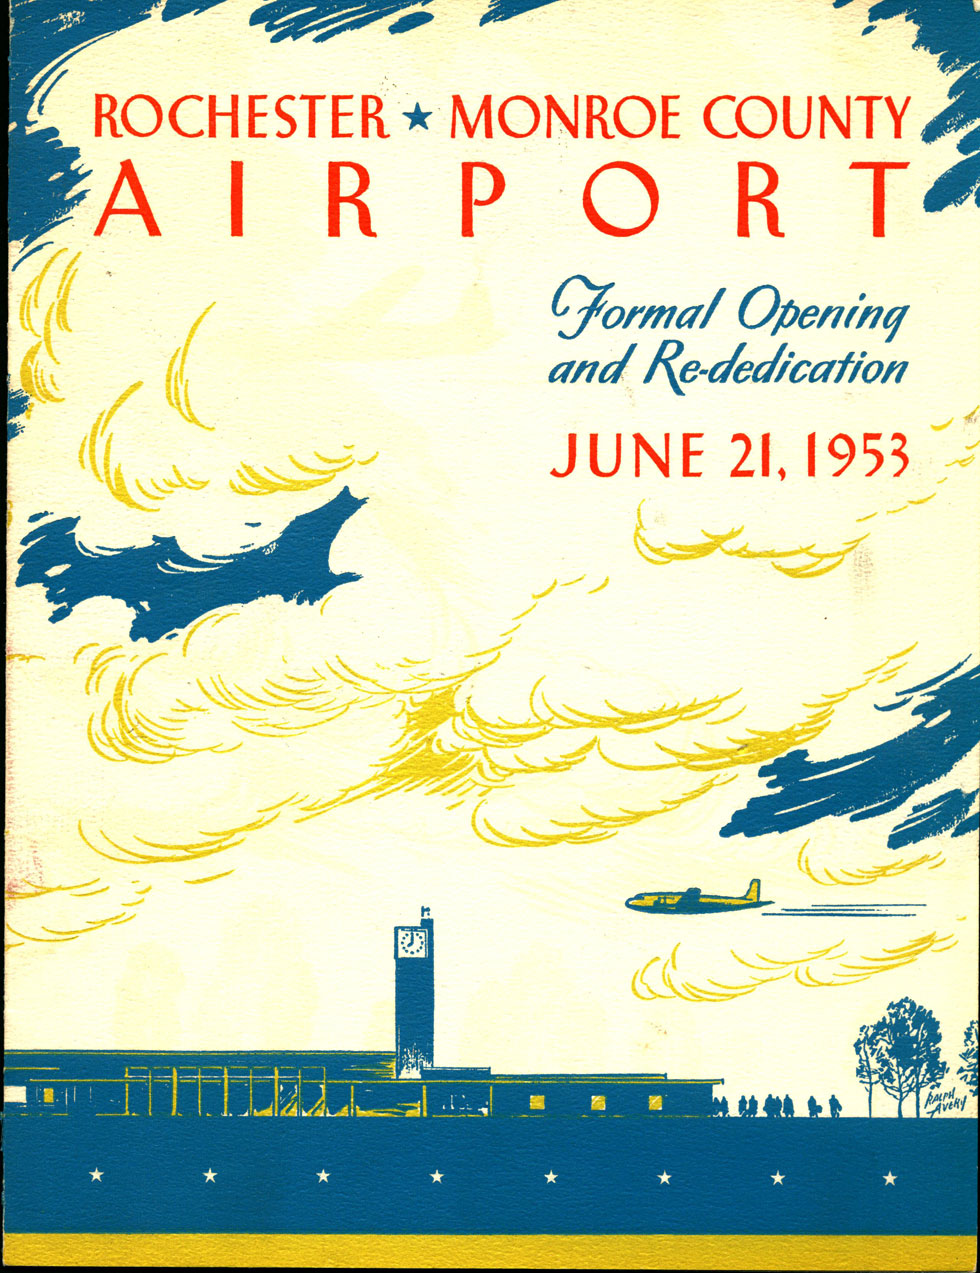 On June 21, 1953 the brand new terminal was dedicated. This brochure was given to guests in attendance at the ceremony. [IMAGE: Rochester Public Library Local History Division]